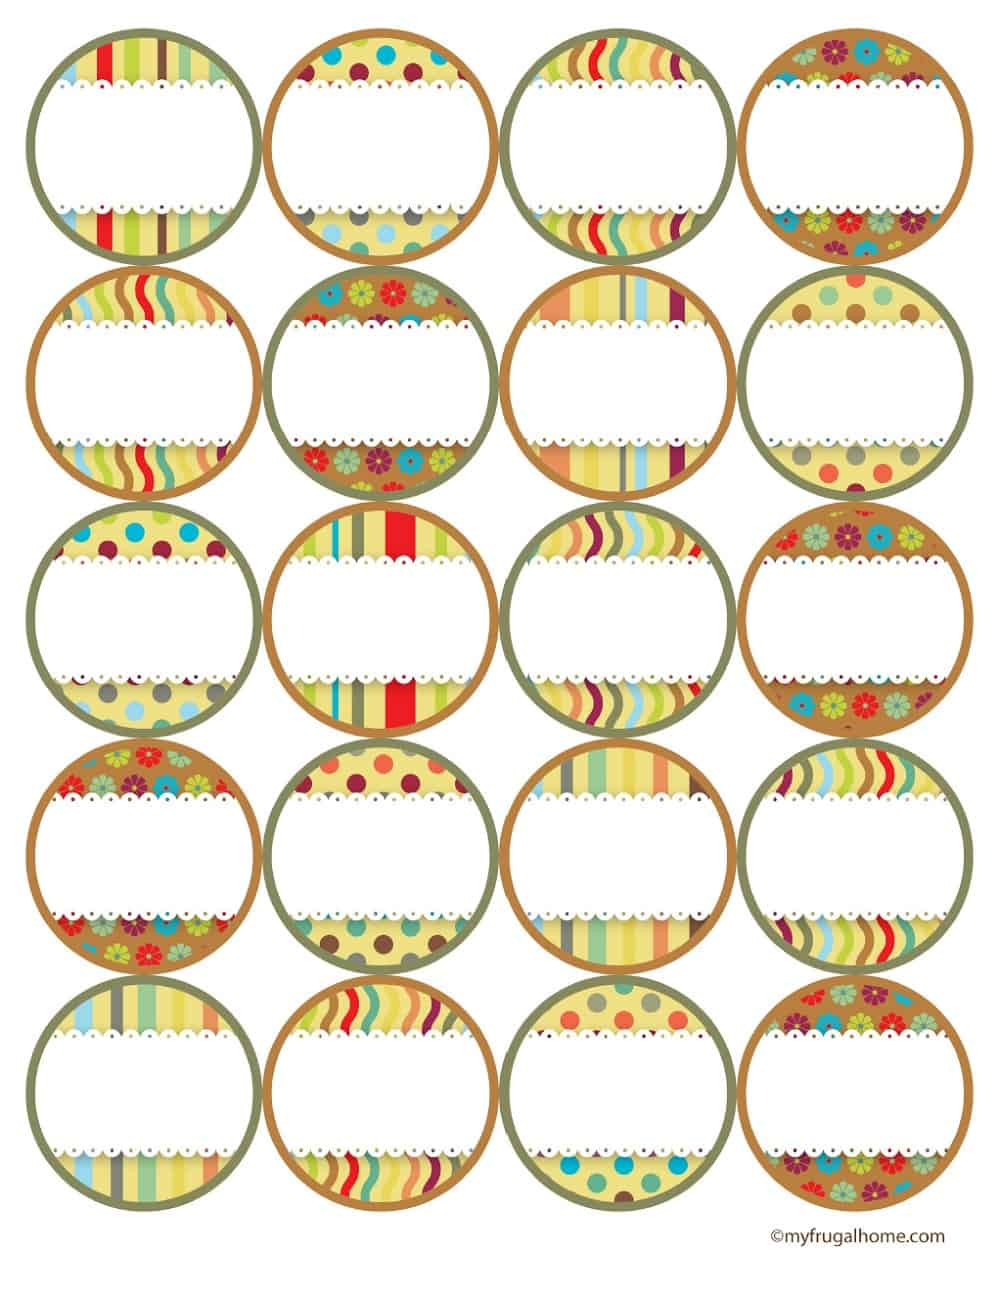 photograph regarding Free Printable Mason Jar Labels Including Blanks. These Are So Pretty named Printable Canning Jar Labels